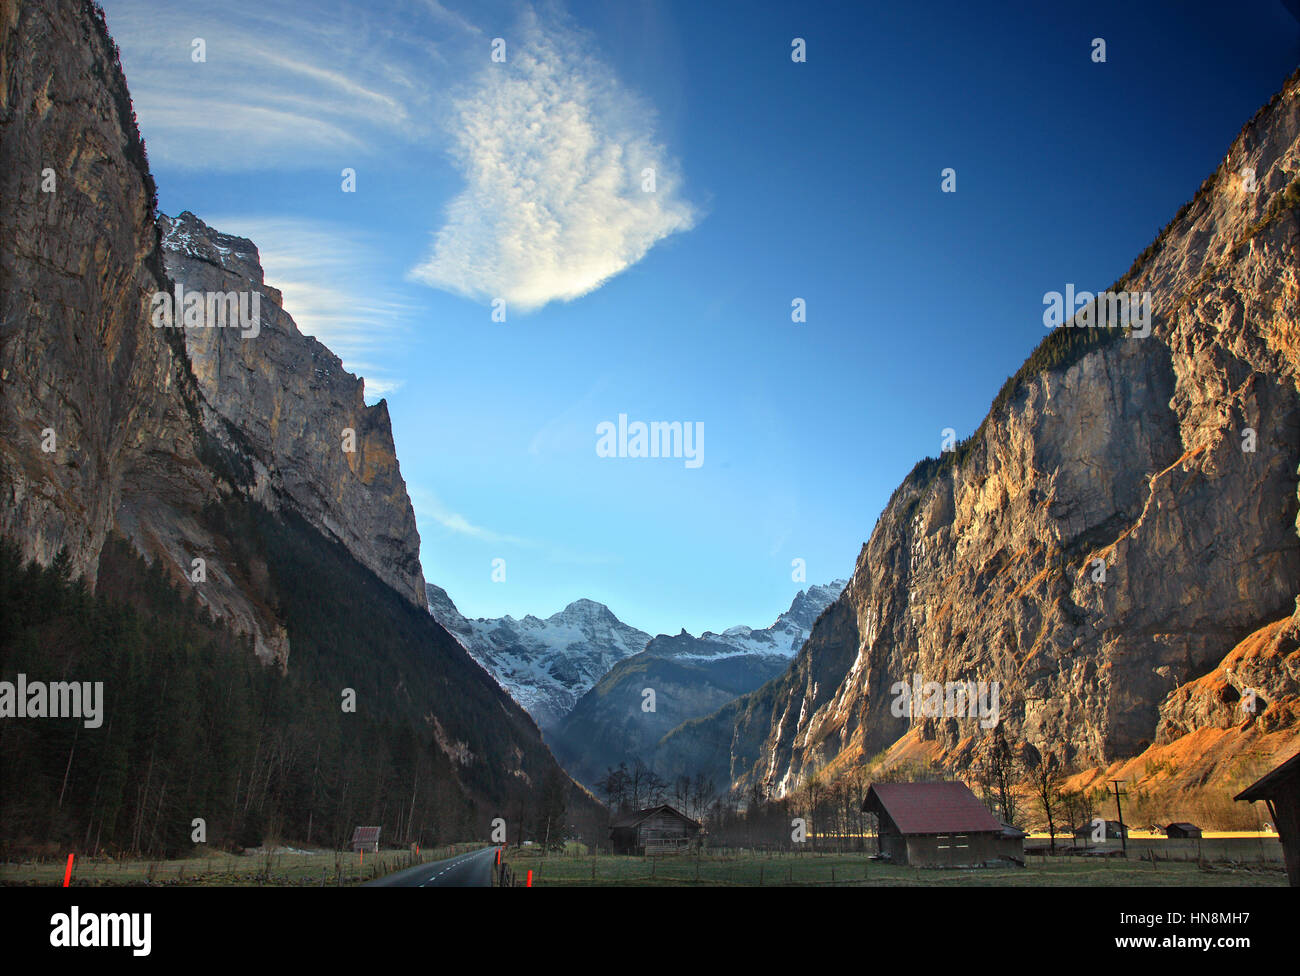 Lauterbrunnen valley and in the background the Swiss Alps. Bernese Oberland, Switzerland Stock Photo